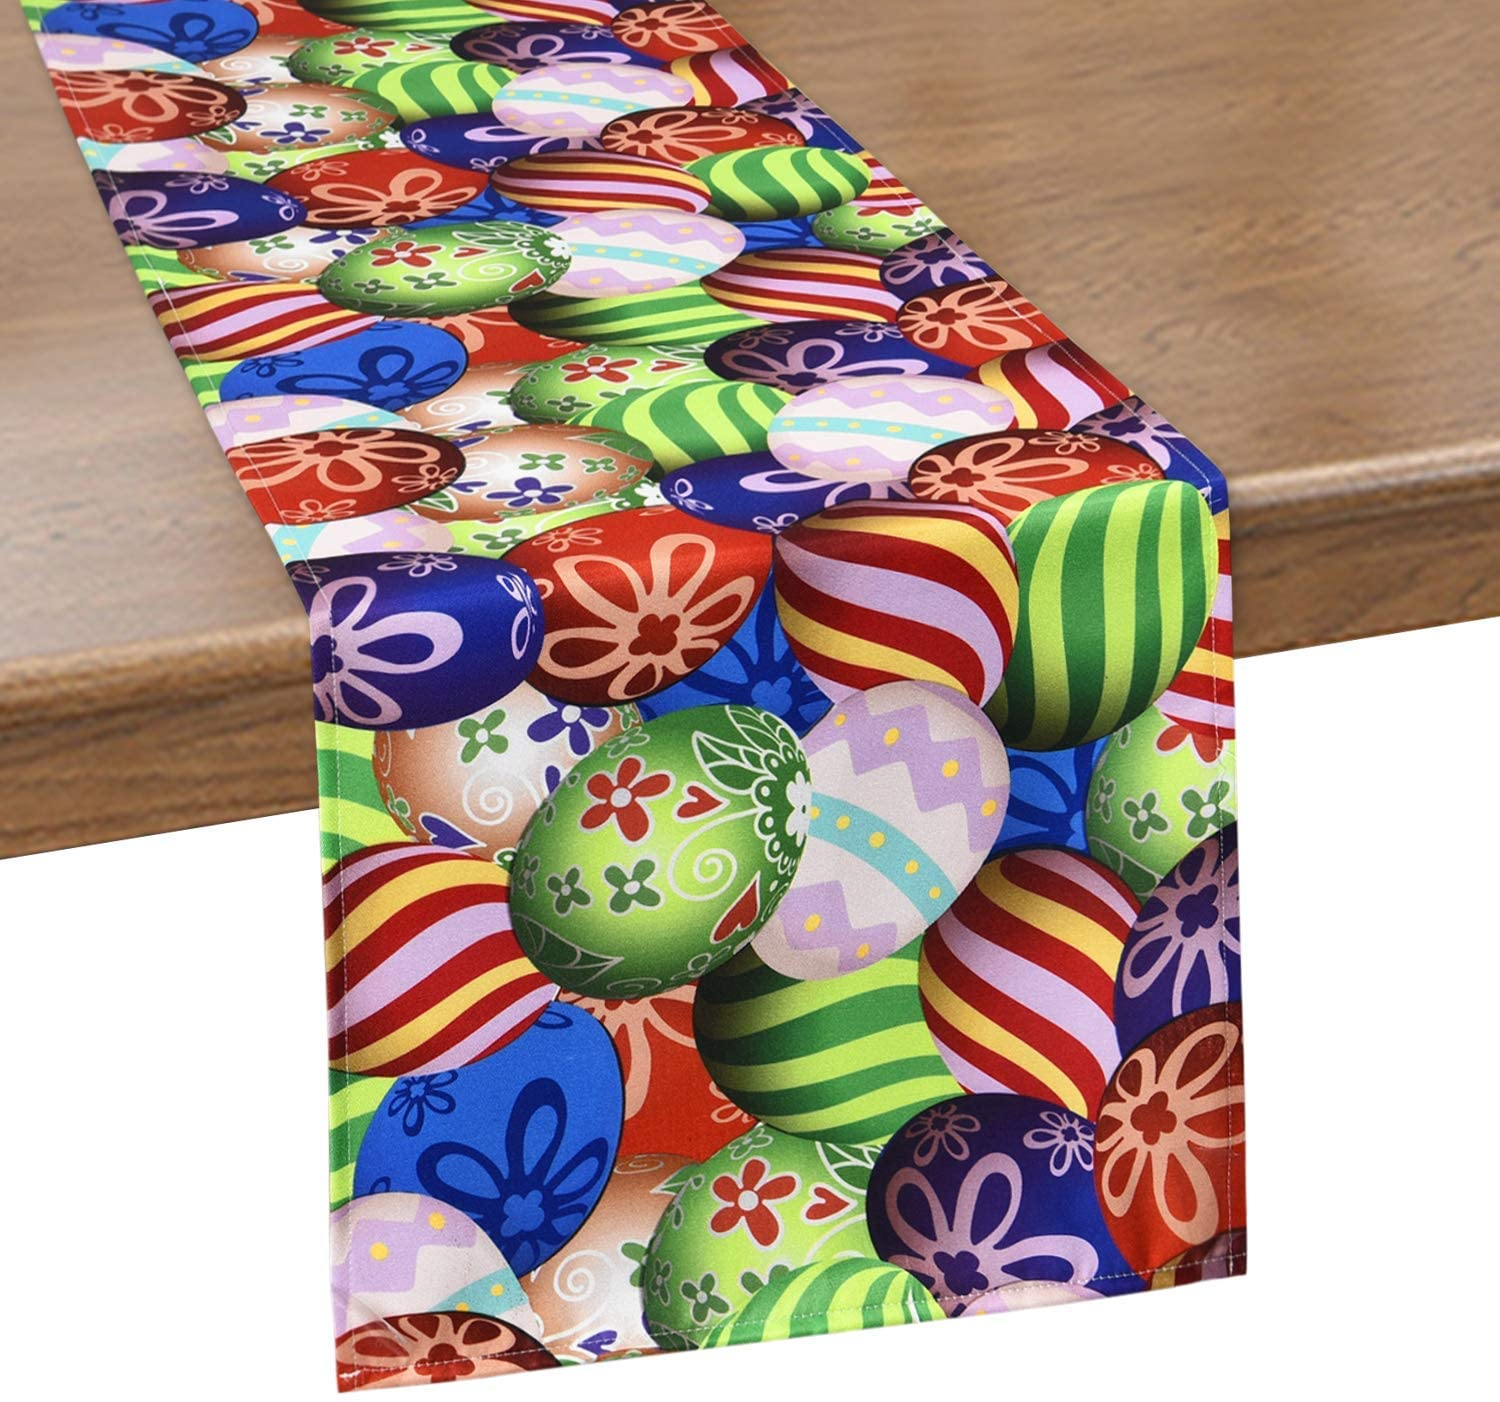 Smurfs Yingda Easter Colorful Egg Table Runner, Polyester Waterproof Table Runner for Spring Holiday, Catering Events, Indoor and Outdoor Parties 14 × 70 inches